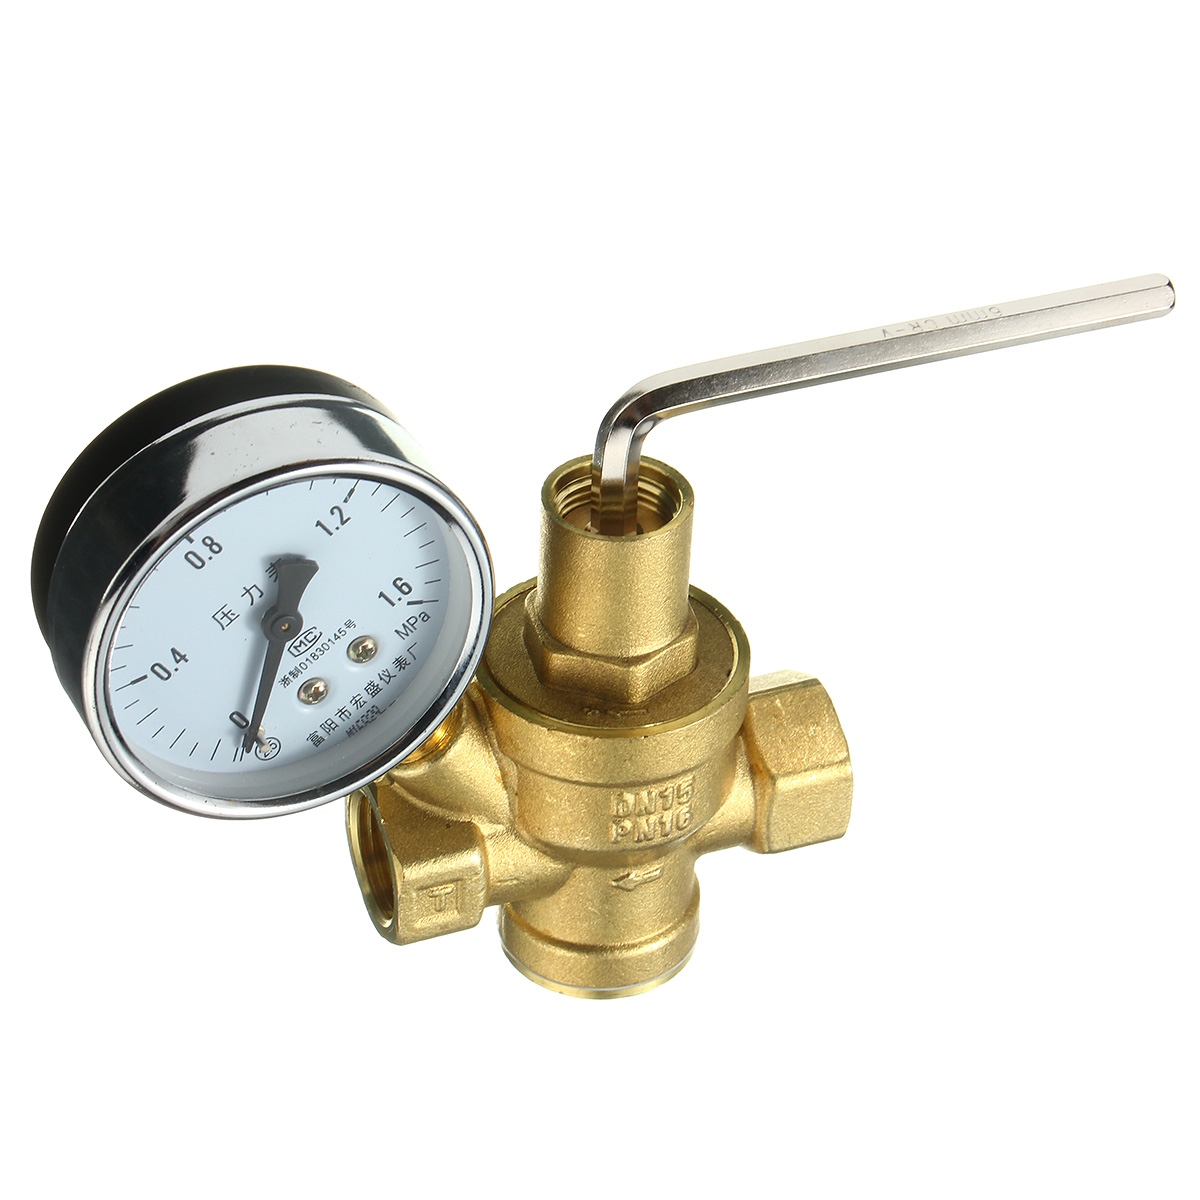 dn15 1 2inch bspp brass water pressure reducing valve with gauge flow adjustable goodbuy sedo. Black Bedroom Furniture Sets. Home Design Ideas